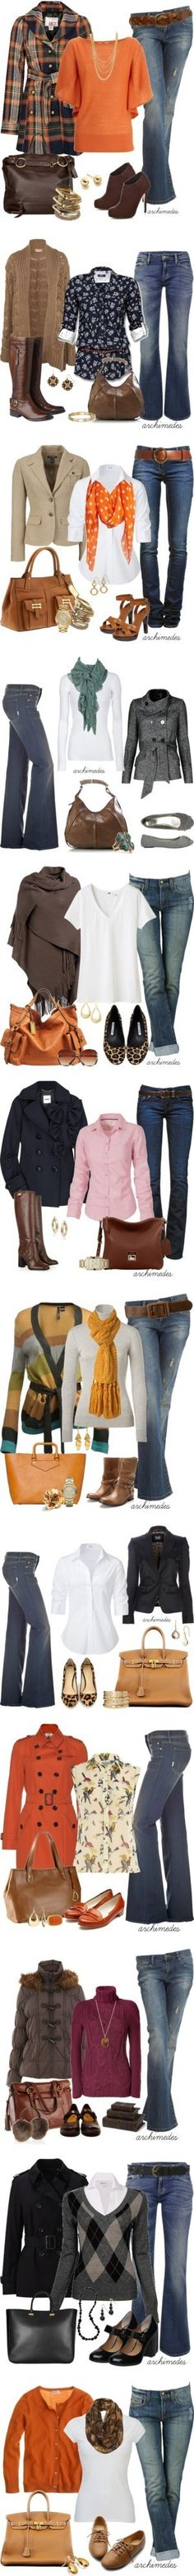 dd93f02e909d Dressed for Fall. Love all the looks with jeans.now to find non mom jeans! Cathleen  Warren McElligott · Ideas - My Style